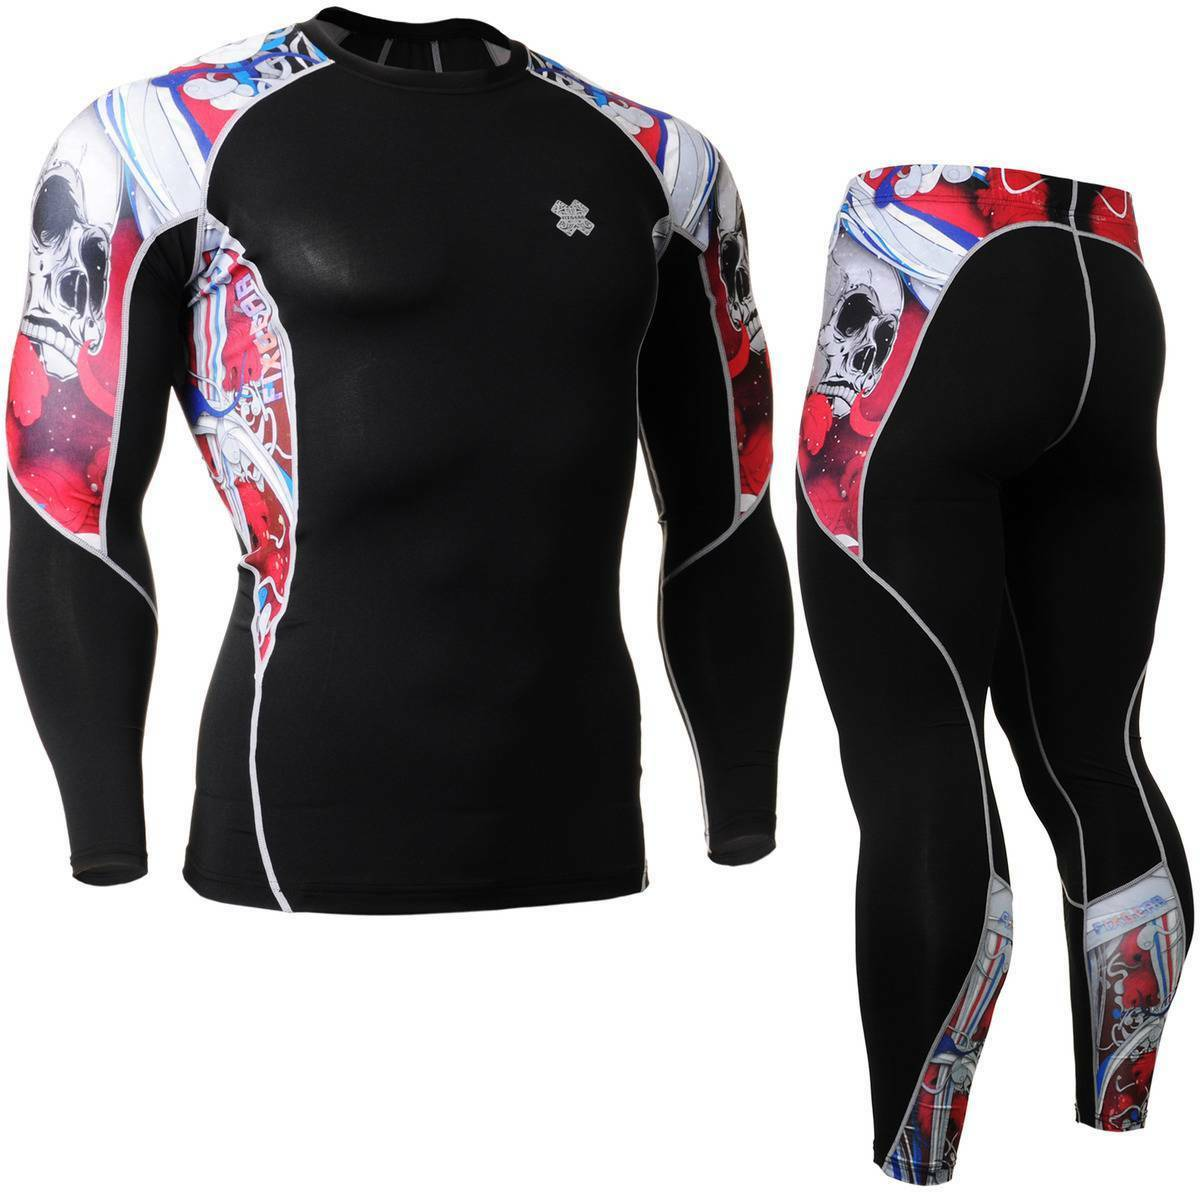 FIXGEAR C2L P2L-B19R SET Compression Shirts & Pants Skin-tight MMA Training Gym